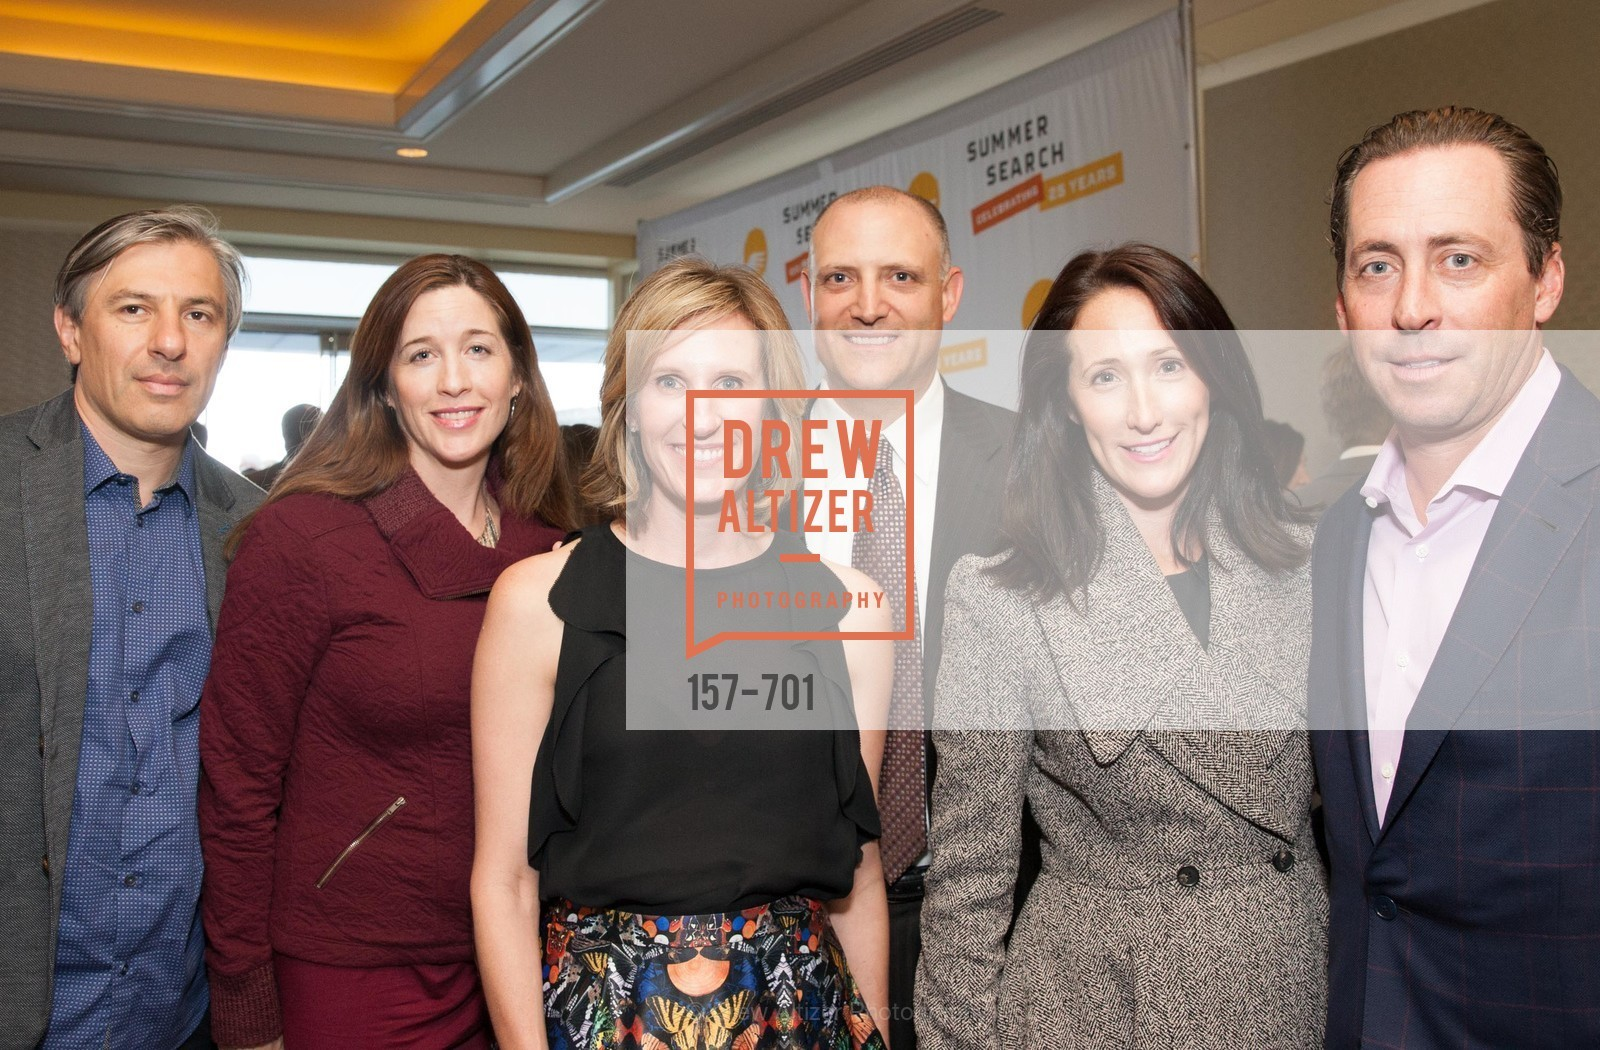 Alex Gurevich, Grenewalt, Hayden Terry, Kathryn Freeman, Bill Freeman, SUMMER SEARCH San Francisco 25th Anniversary, US, May 7th, 2015,Drew Altizer, Drew Altizer Photography, full-service agency, private events, San Francisco photographer, photographer california